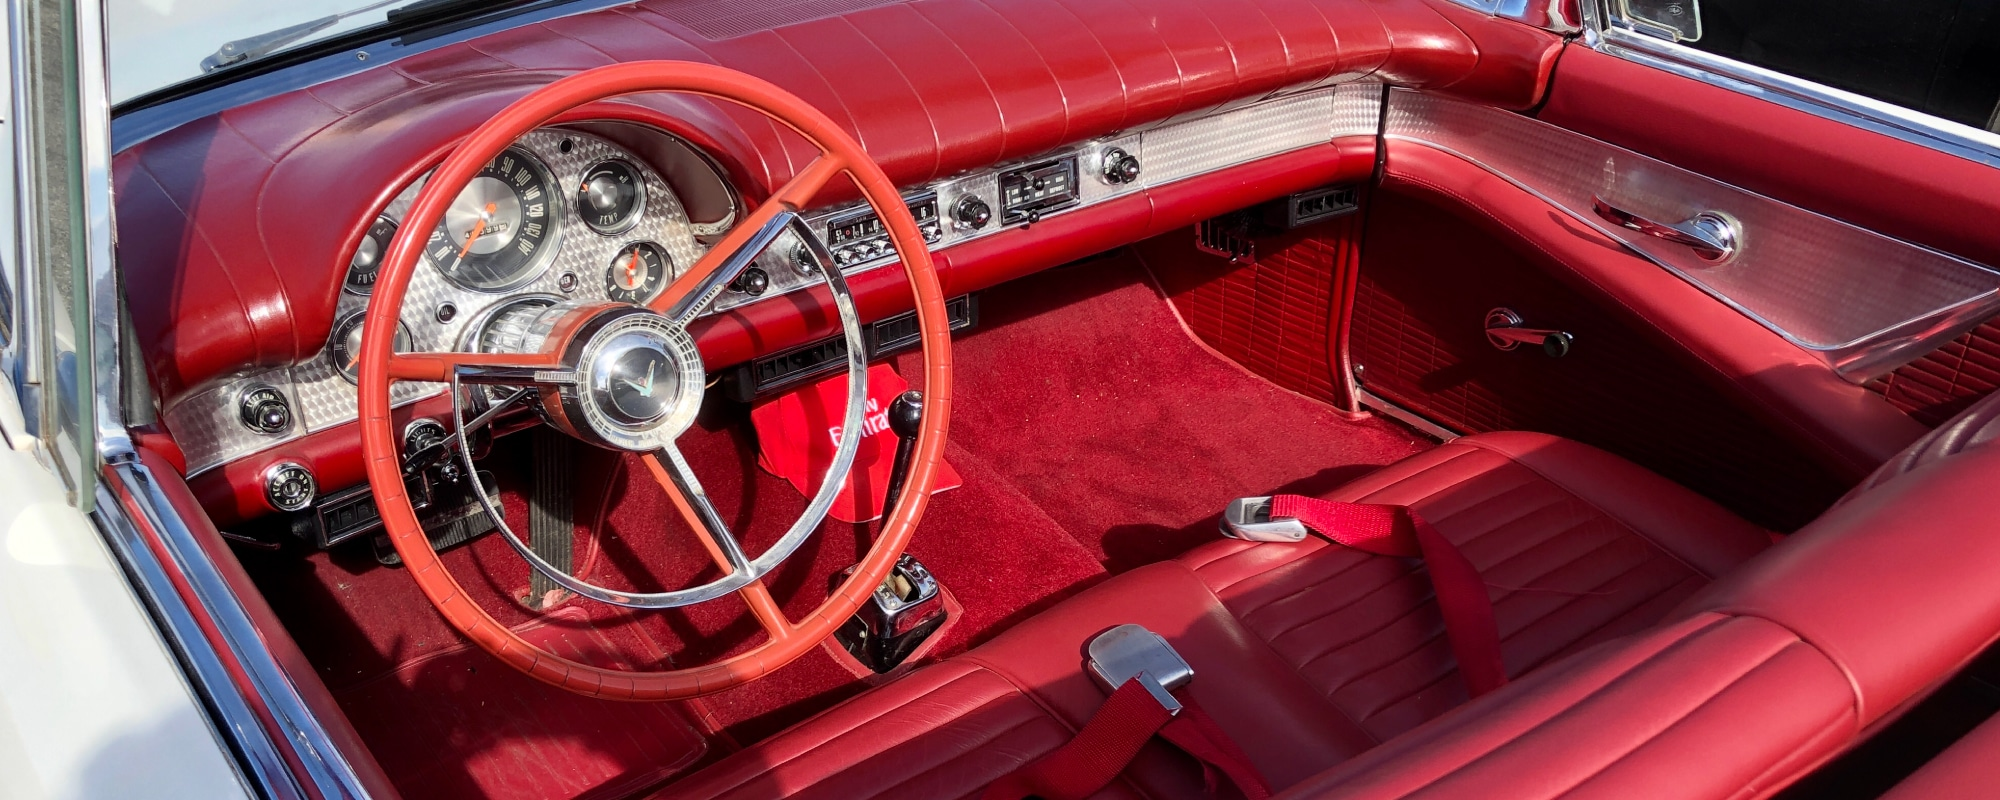 Palm Springs Vintage Car Shows